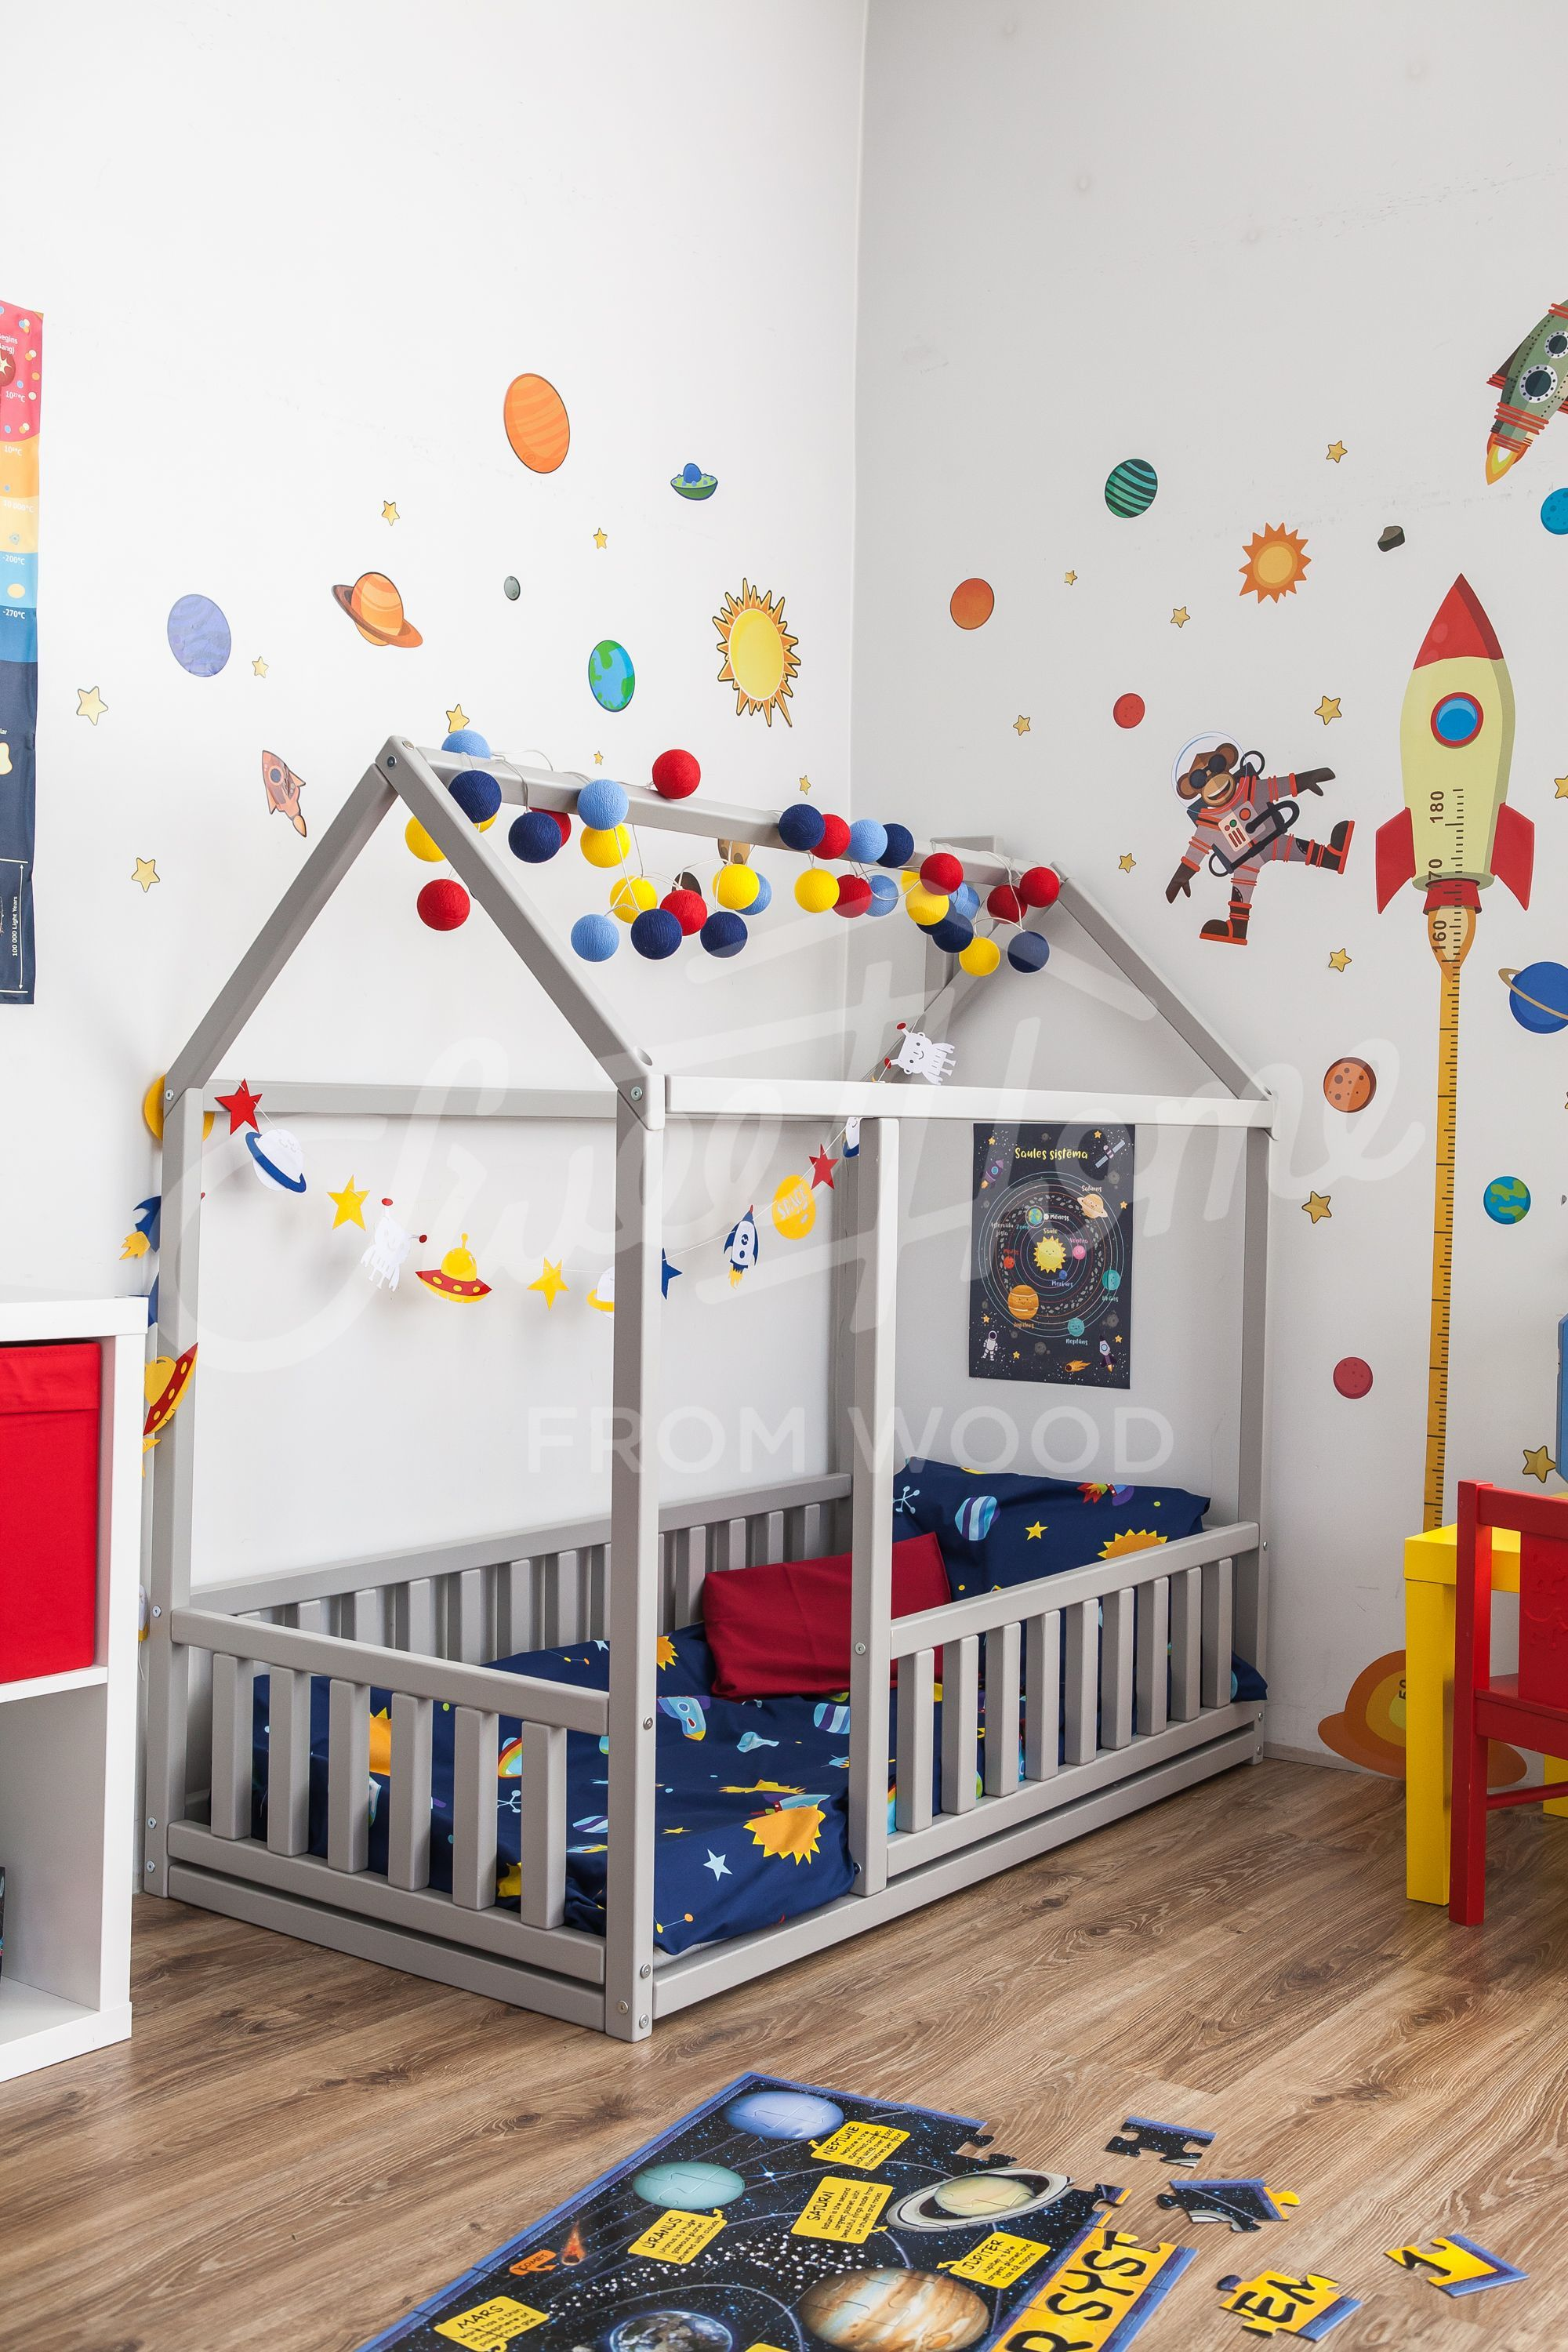 Universe Theme Boys Room Ideas, Space Theme Kids Room Ideas,